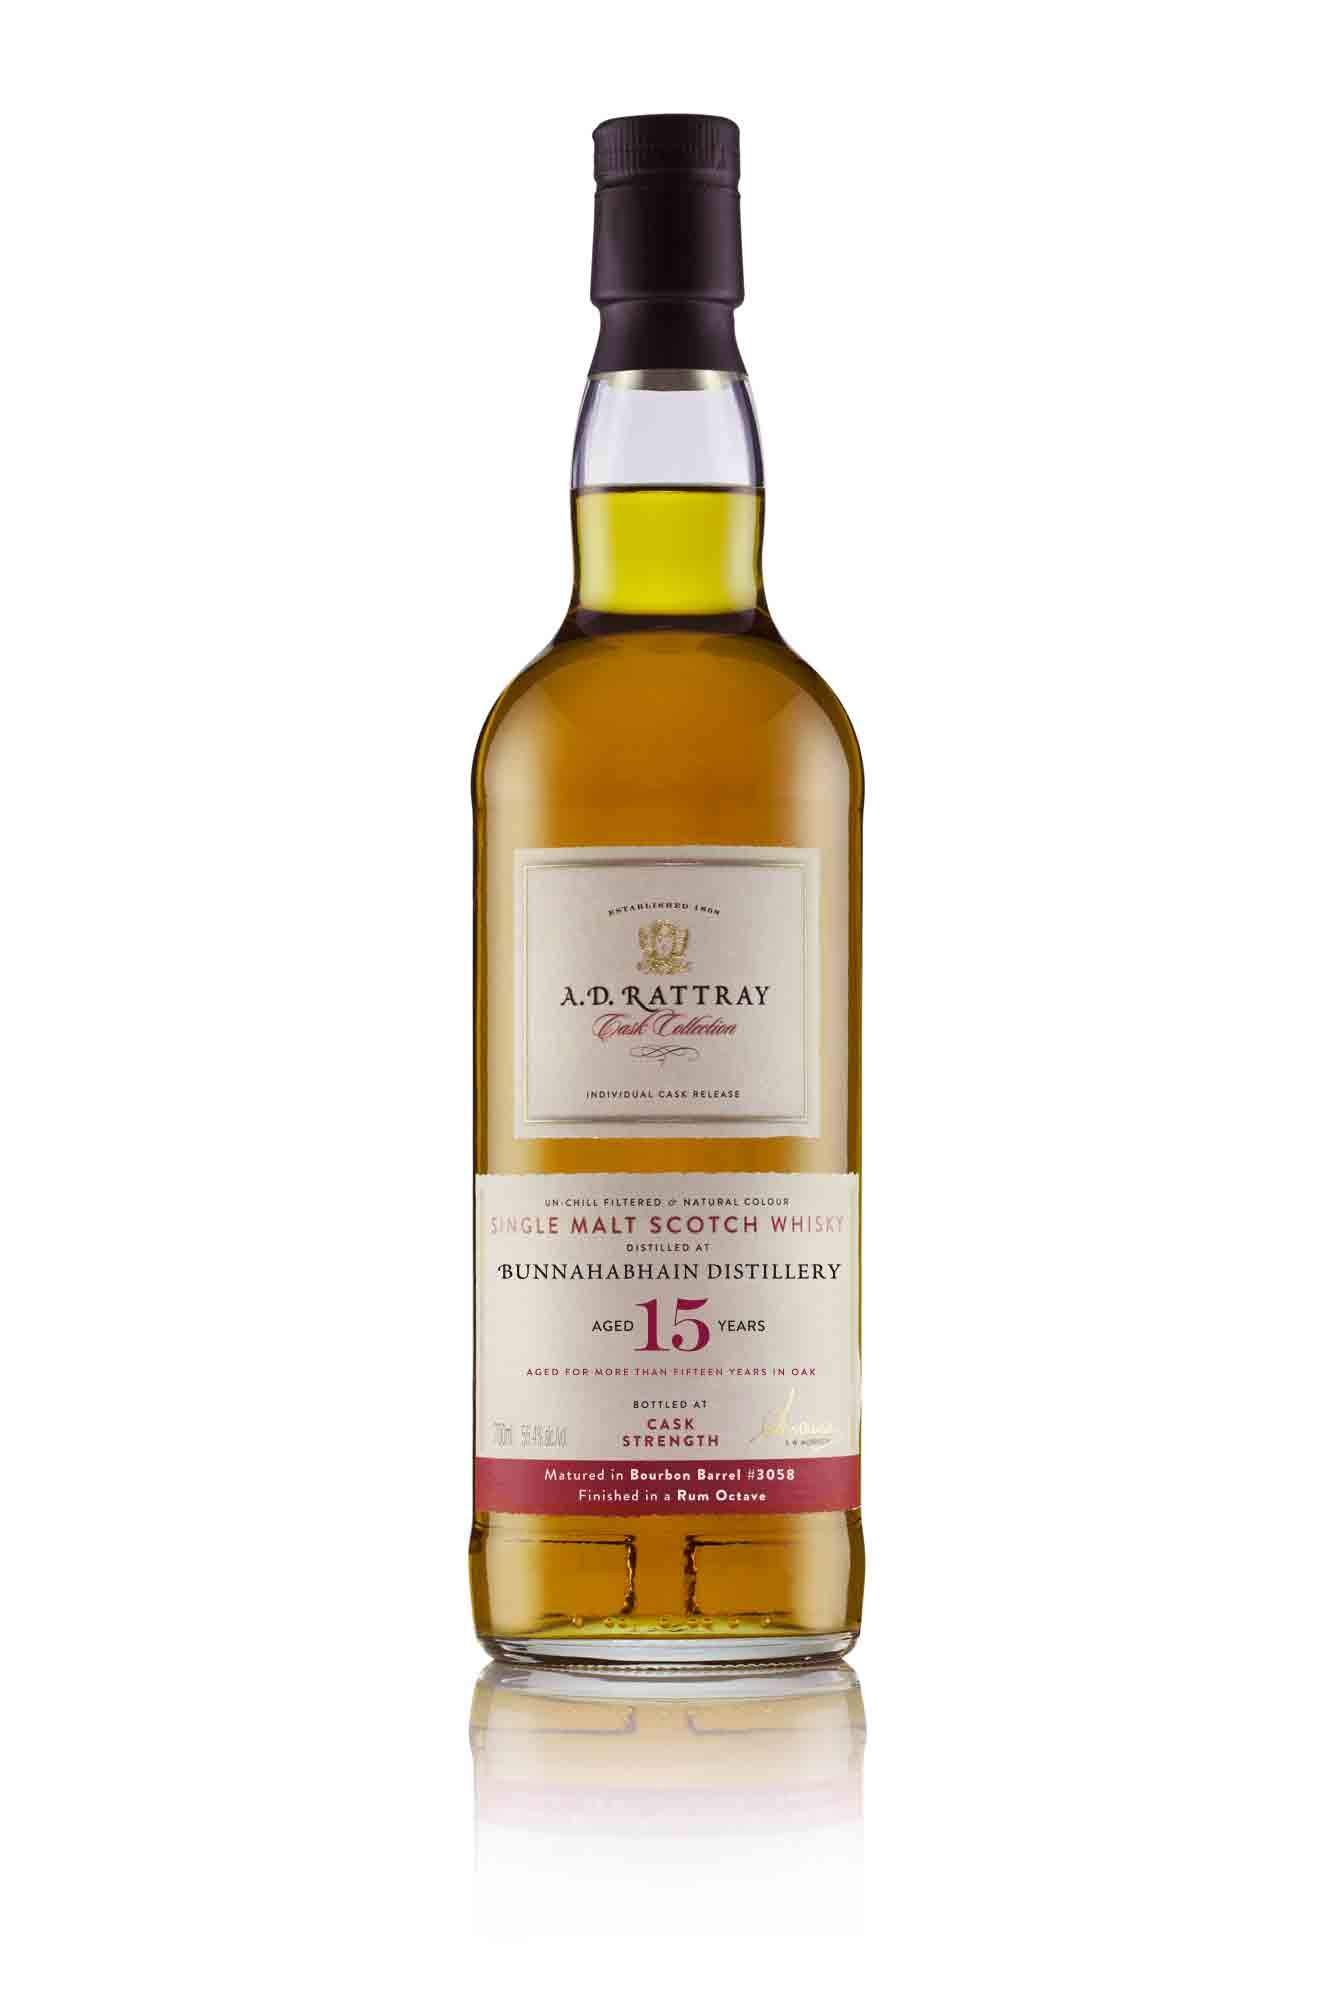 The Dramble's review of the A.D. Rattray Octave Project - Bunnahabhain 15 year old rum octave